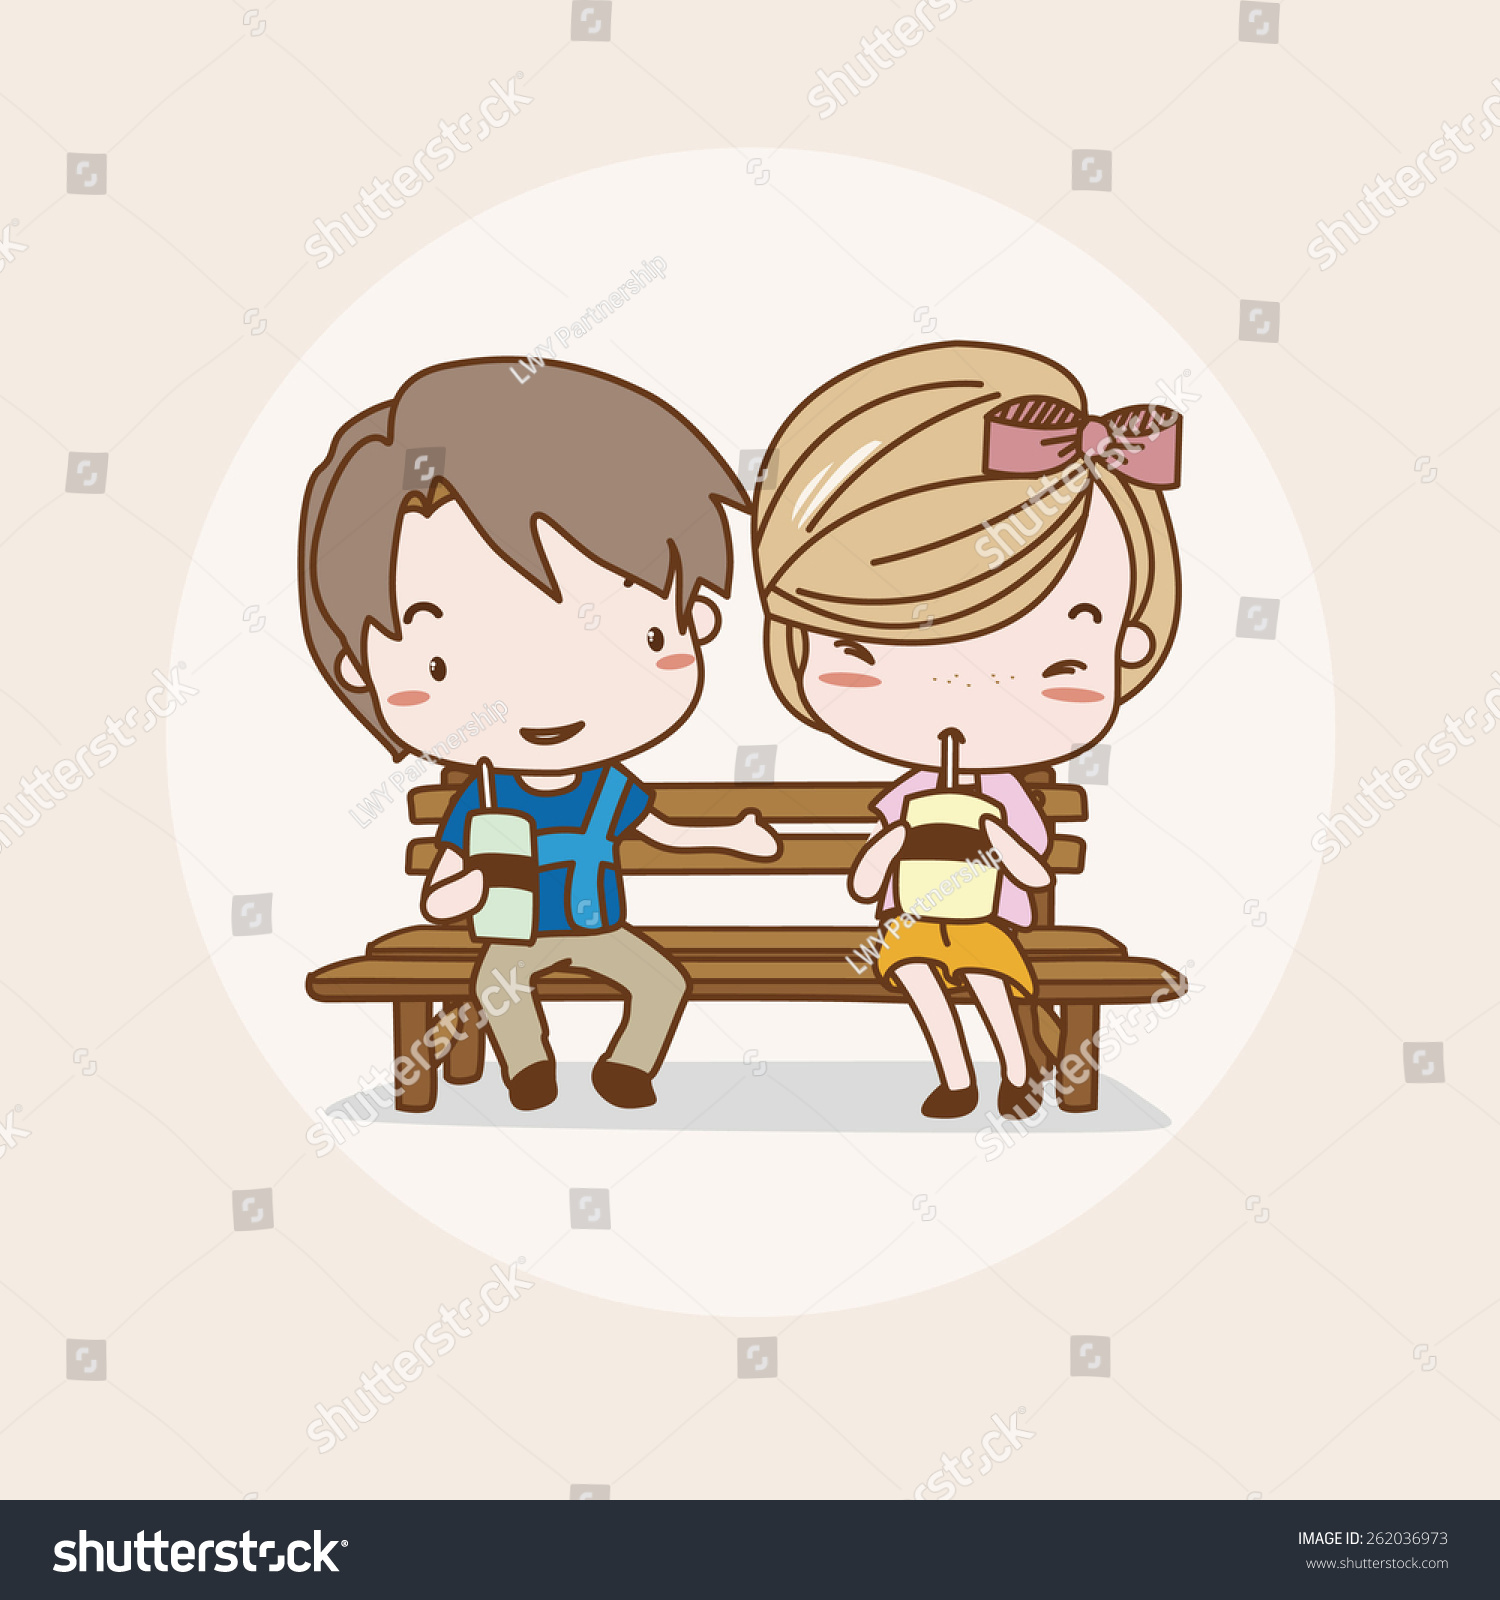 Images of dating illustrations